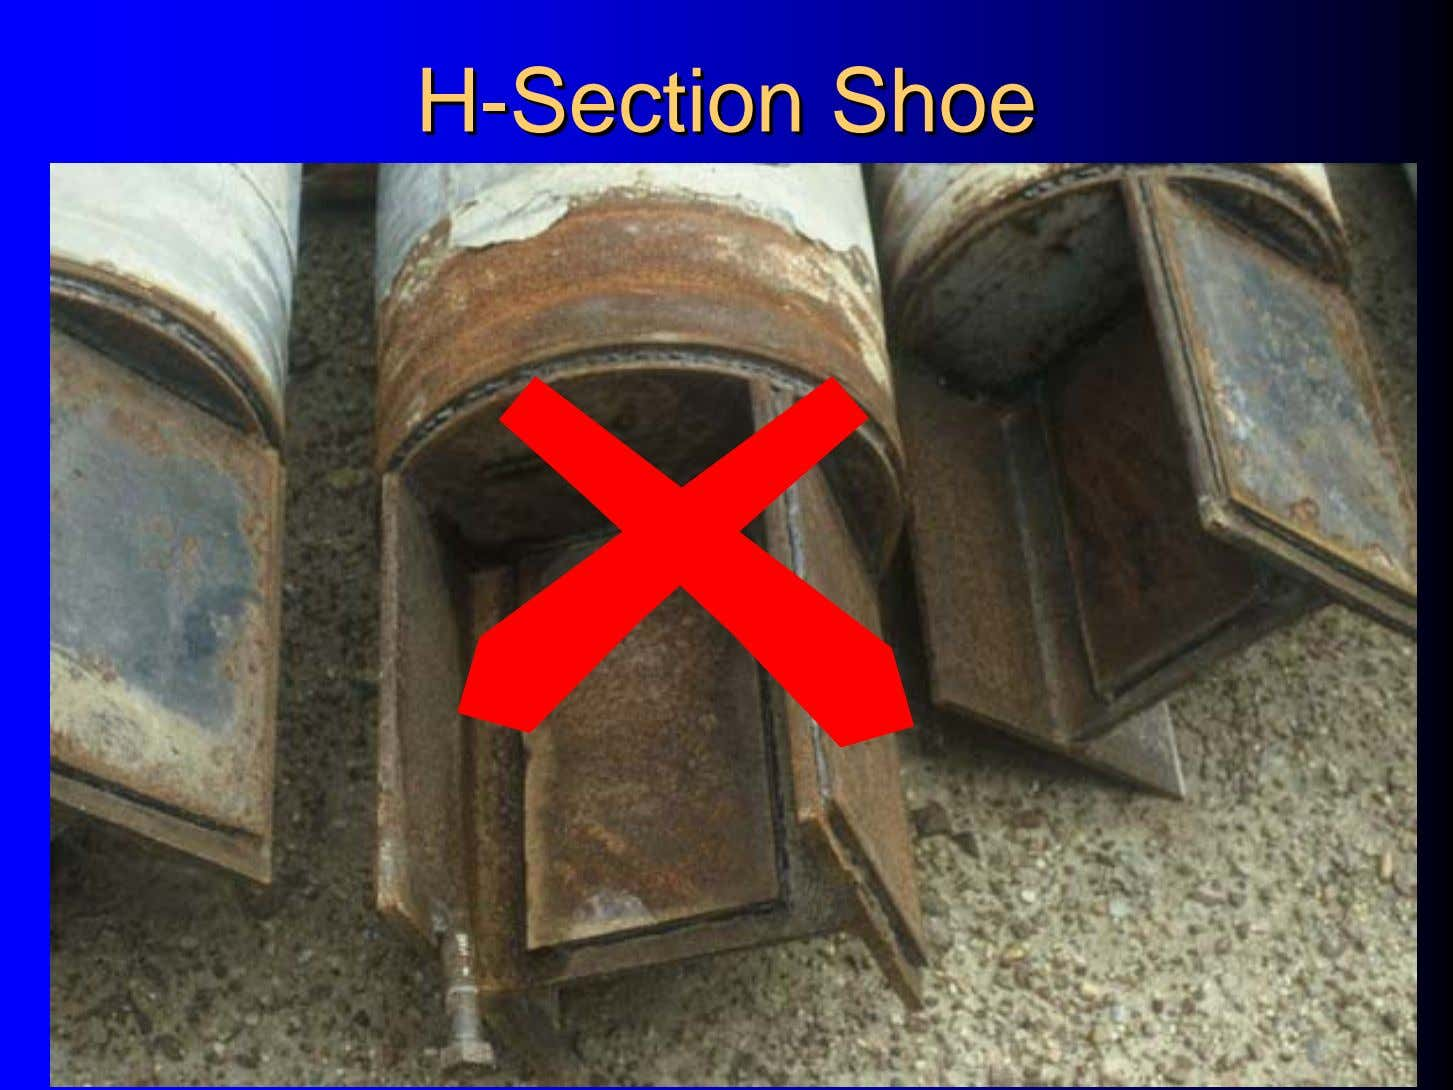 HH--SectionSection ShoeShoe